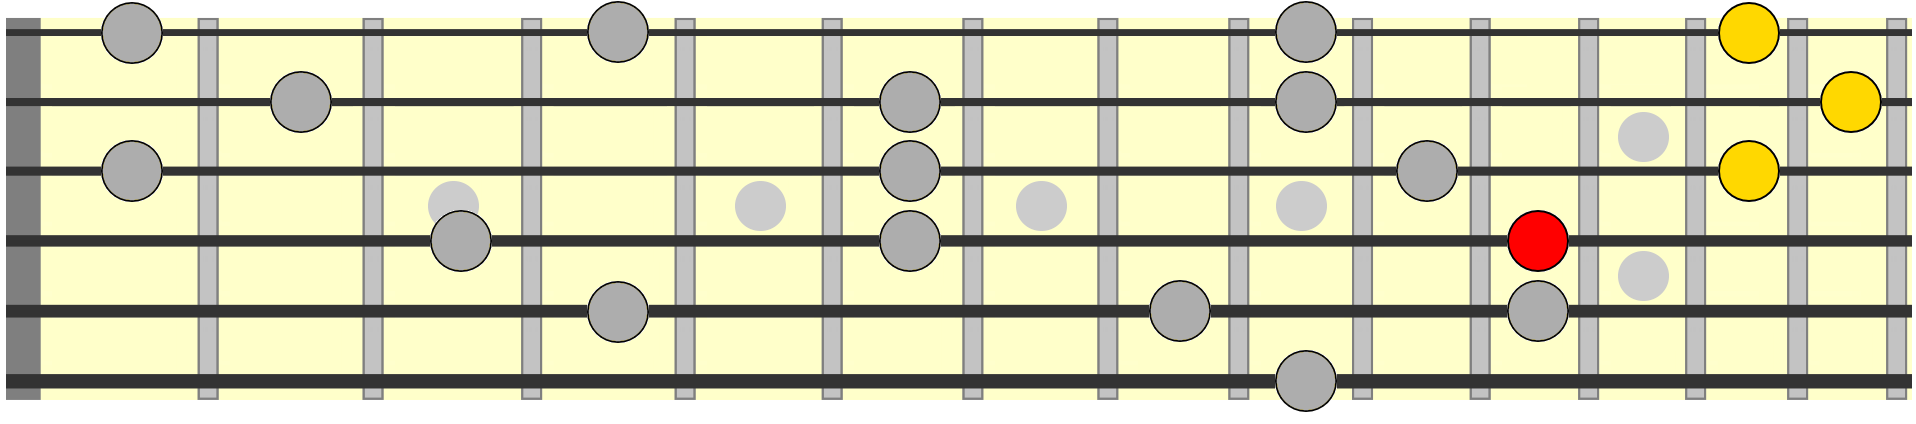 C major how to learn play guitar